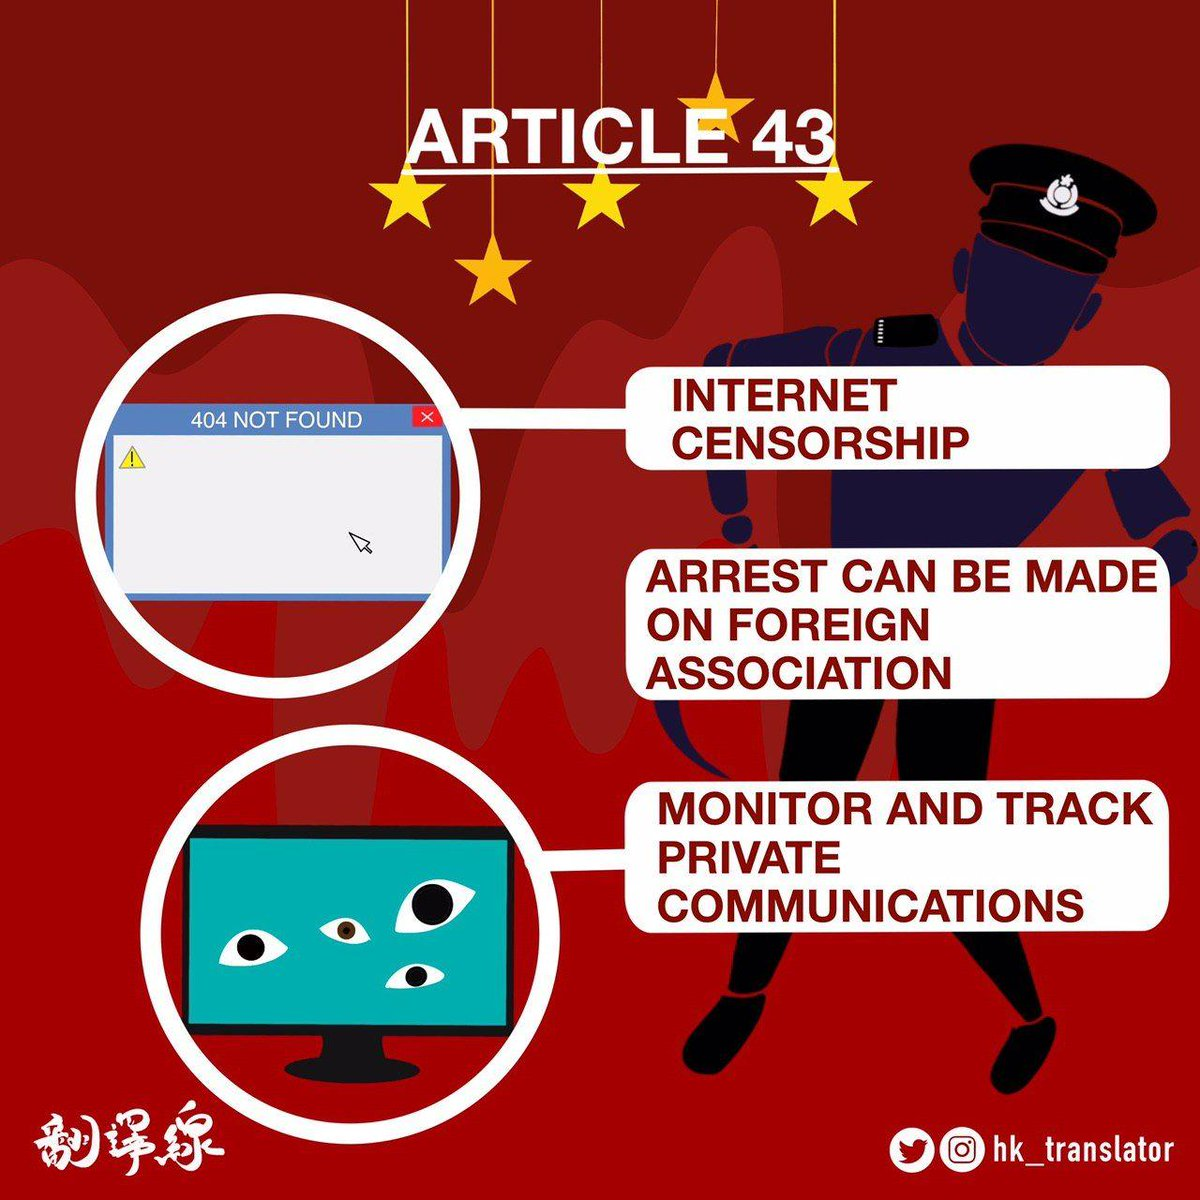 @bopinion @antd Under the #NationalSecurityLaw, nobody is safe. Big companies should stay away from Hong Kong.  #SOSHK #FreeHongKong https://t.co/BsU793nnx5